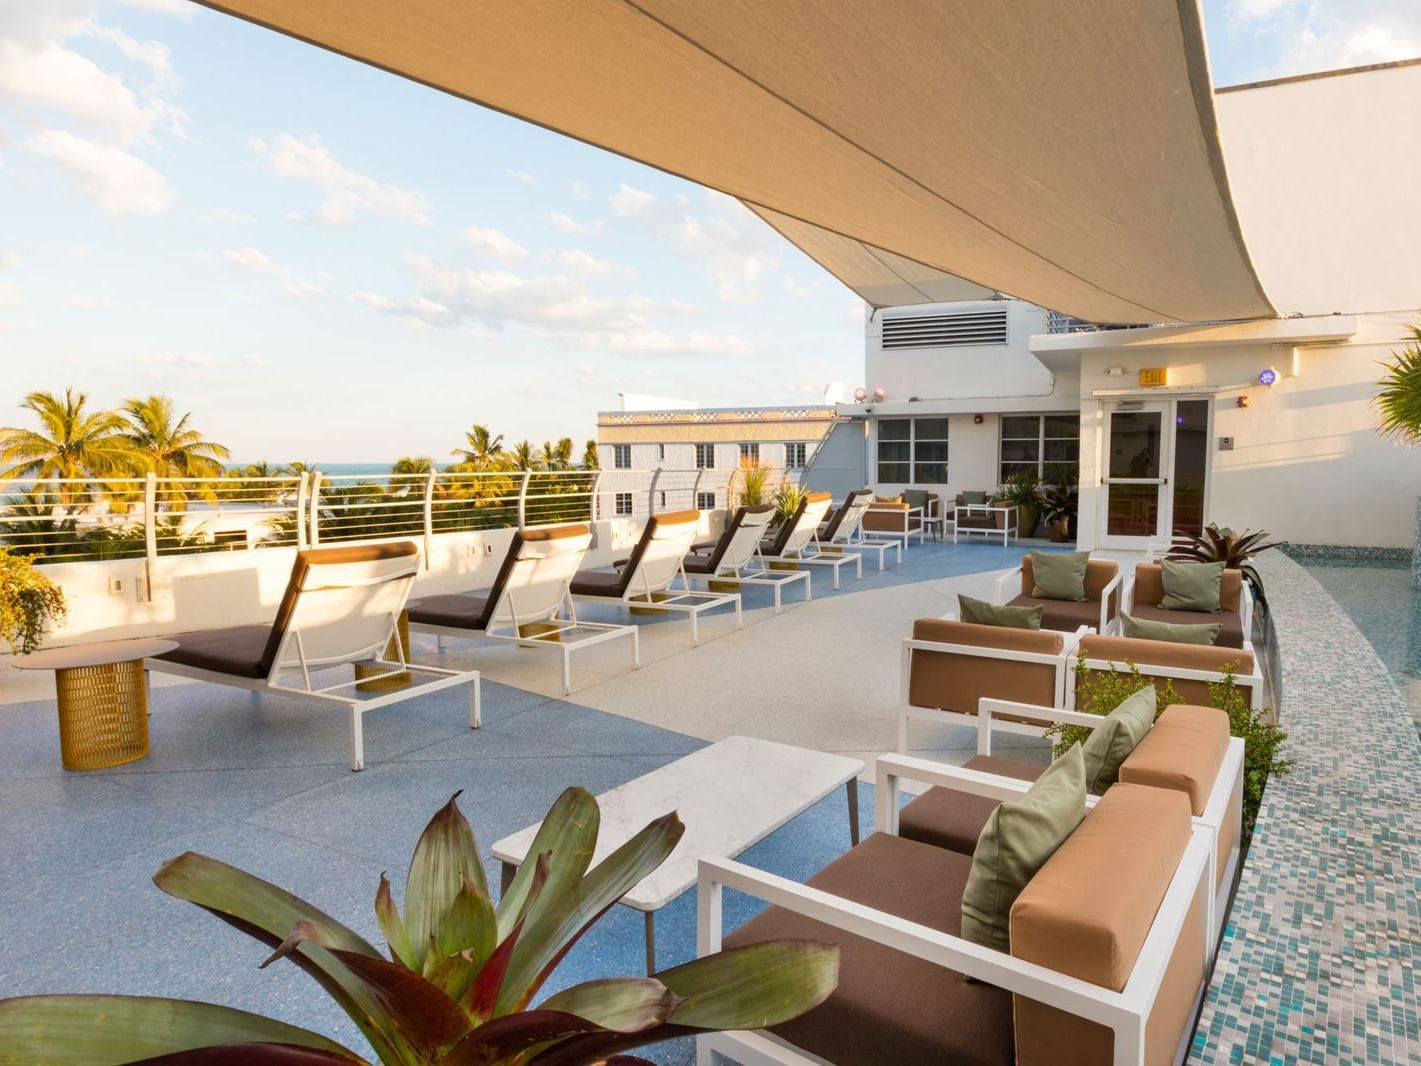 A view of rooftop terrace with sitting area at Essex House by Clevelander